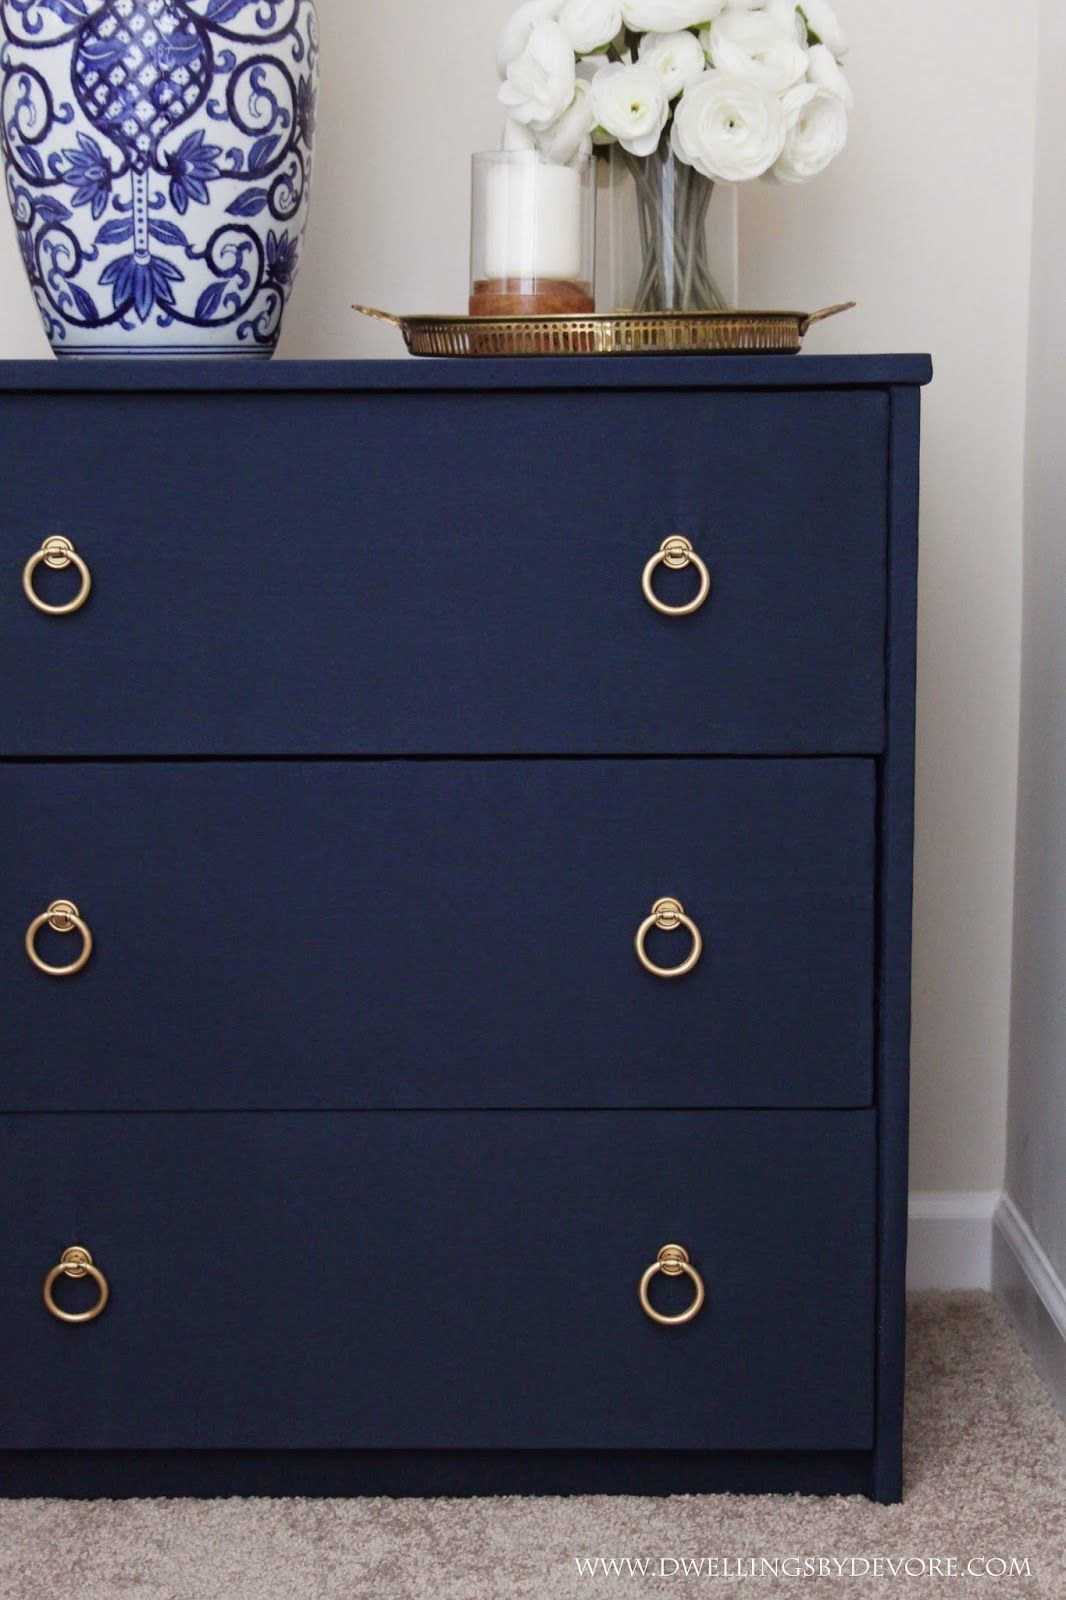 Diy Fabric Covered Nightstand Navy Blue Navy Dresser Navy